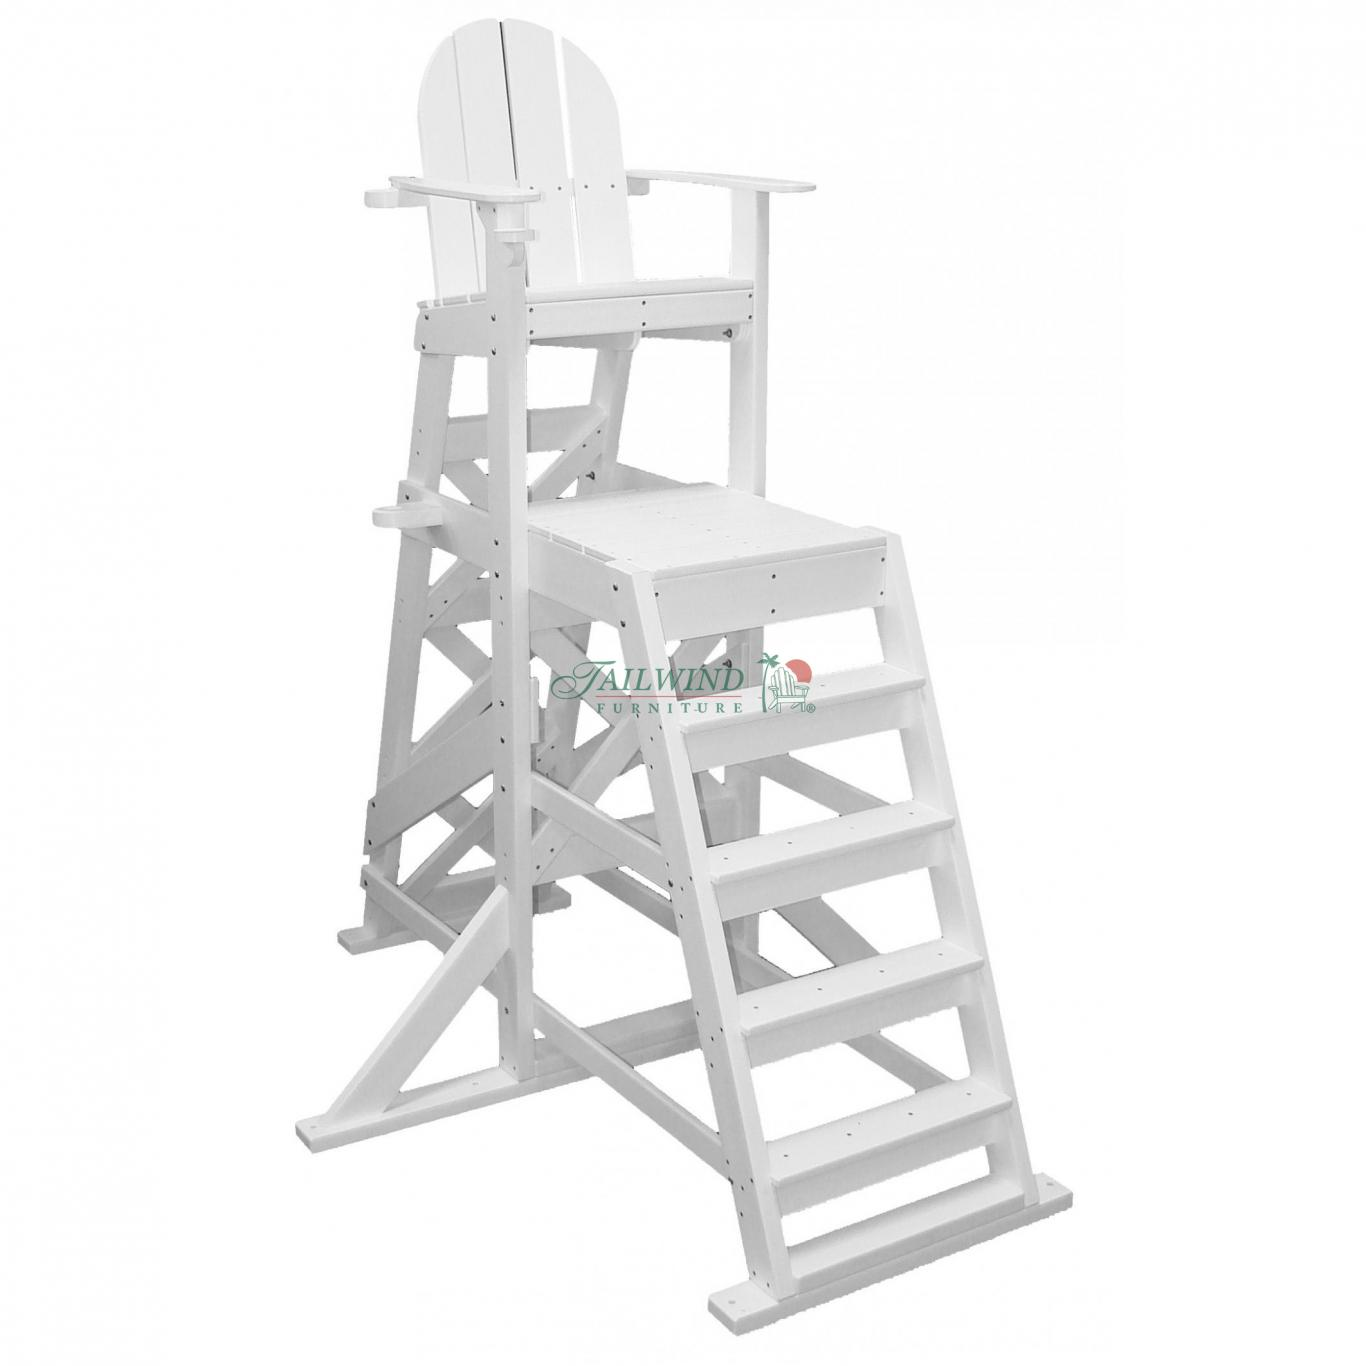 "TLG 535 Tall Lifeguard Chair (front ladder) - 72""L x 59""W x 85""H